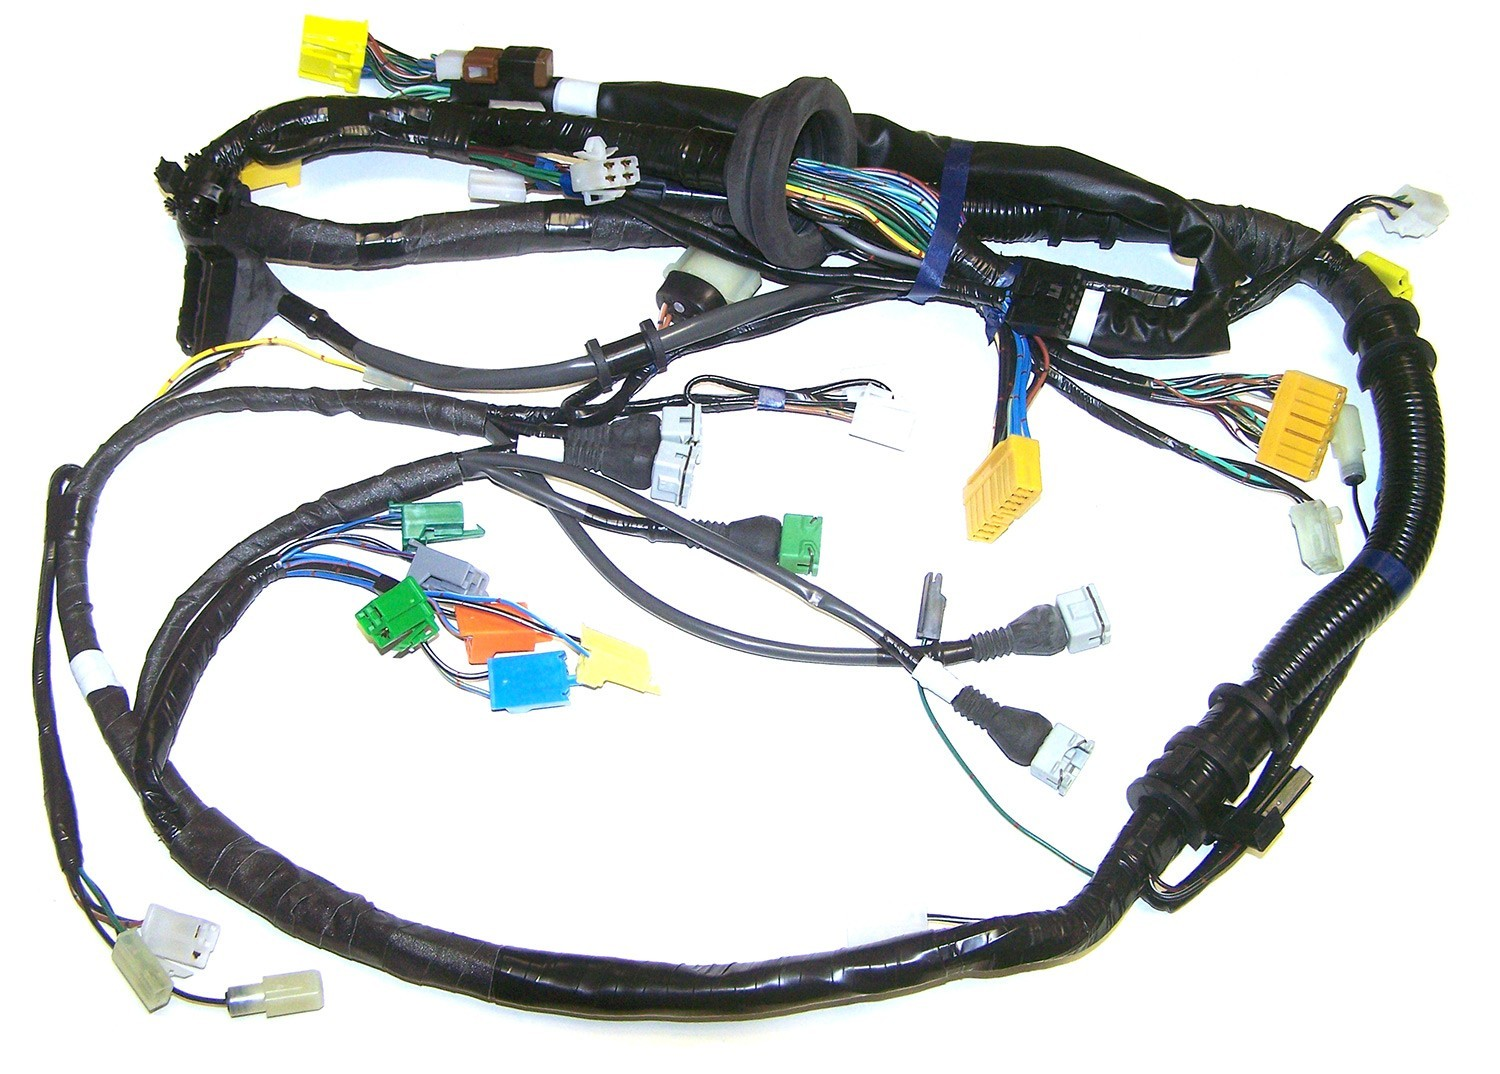 87 88 turbo rx7 engine wiring harness n332 18 051k rh atkinsrotary com rx7 fd single turbo wiring harness rx7 fd single turbo wiring harness